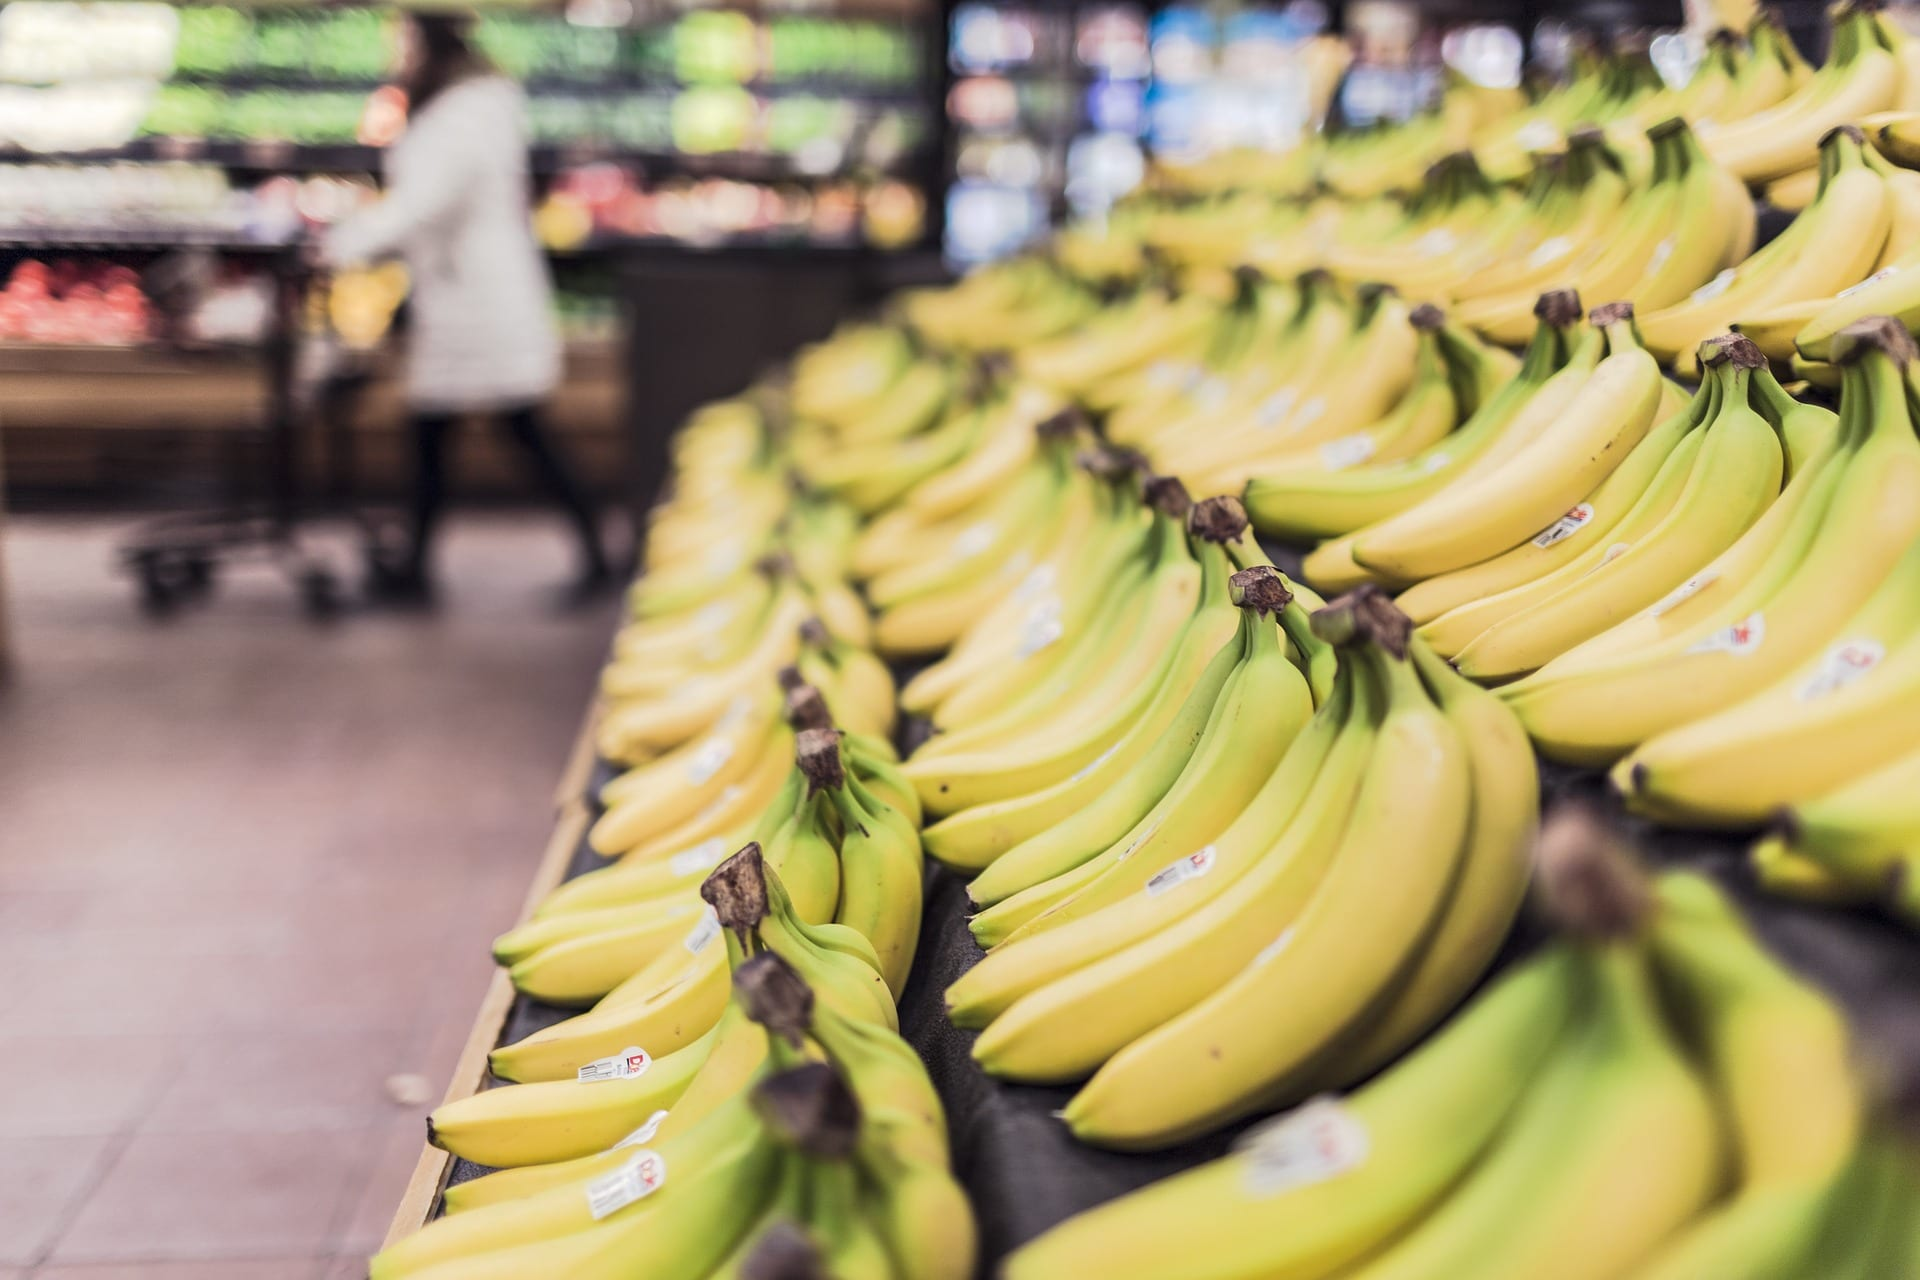 A display of fresh bananas at a supermarket.